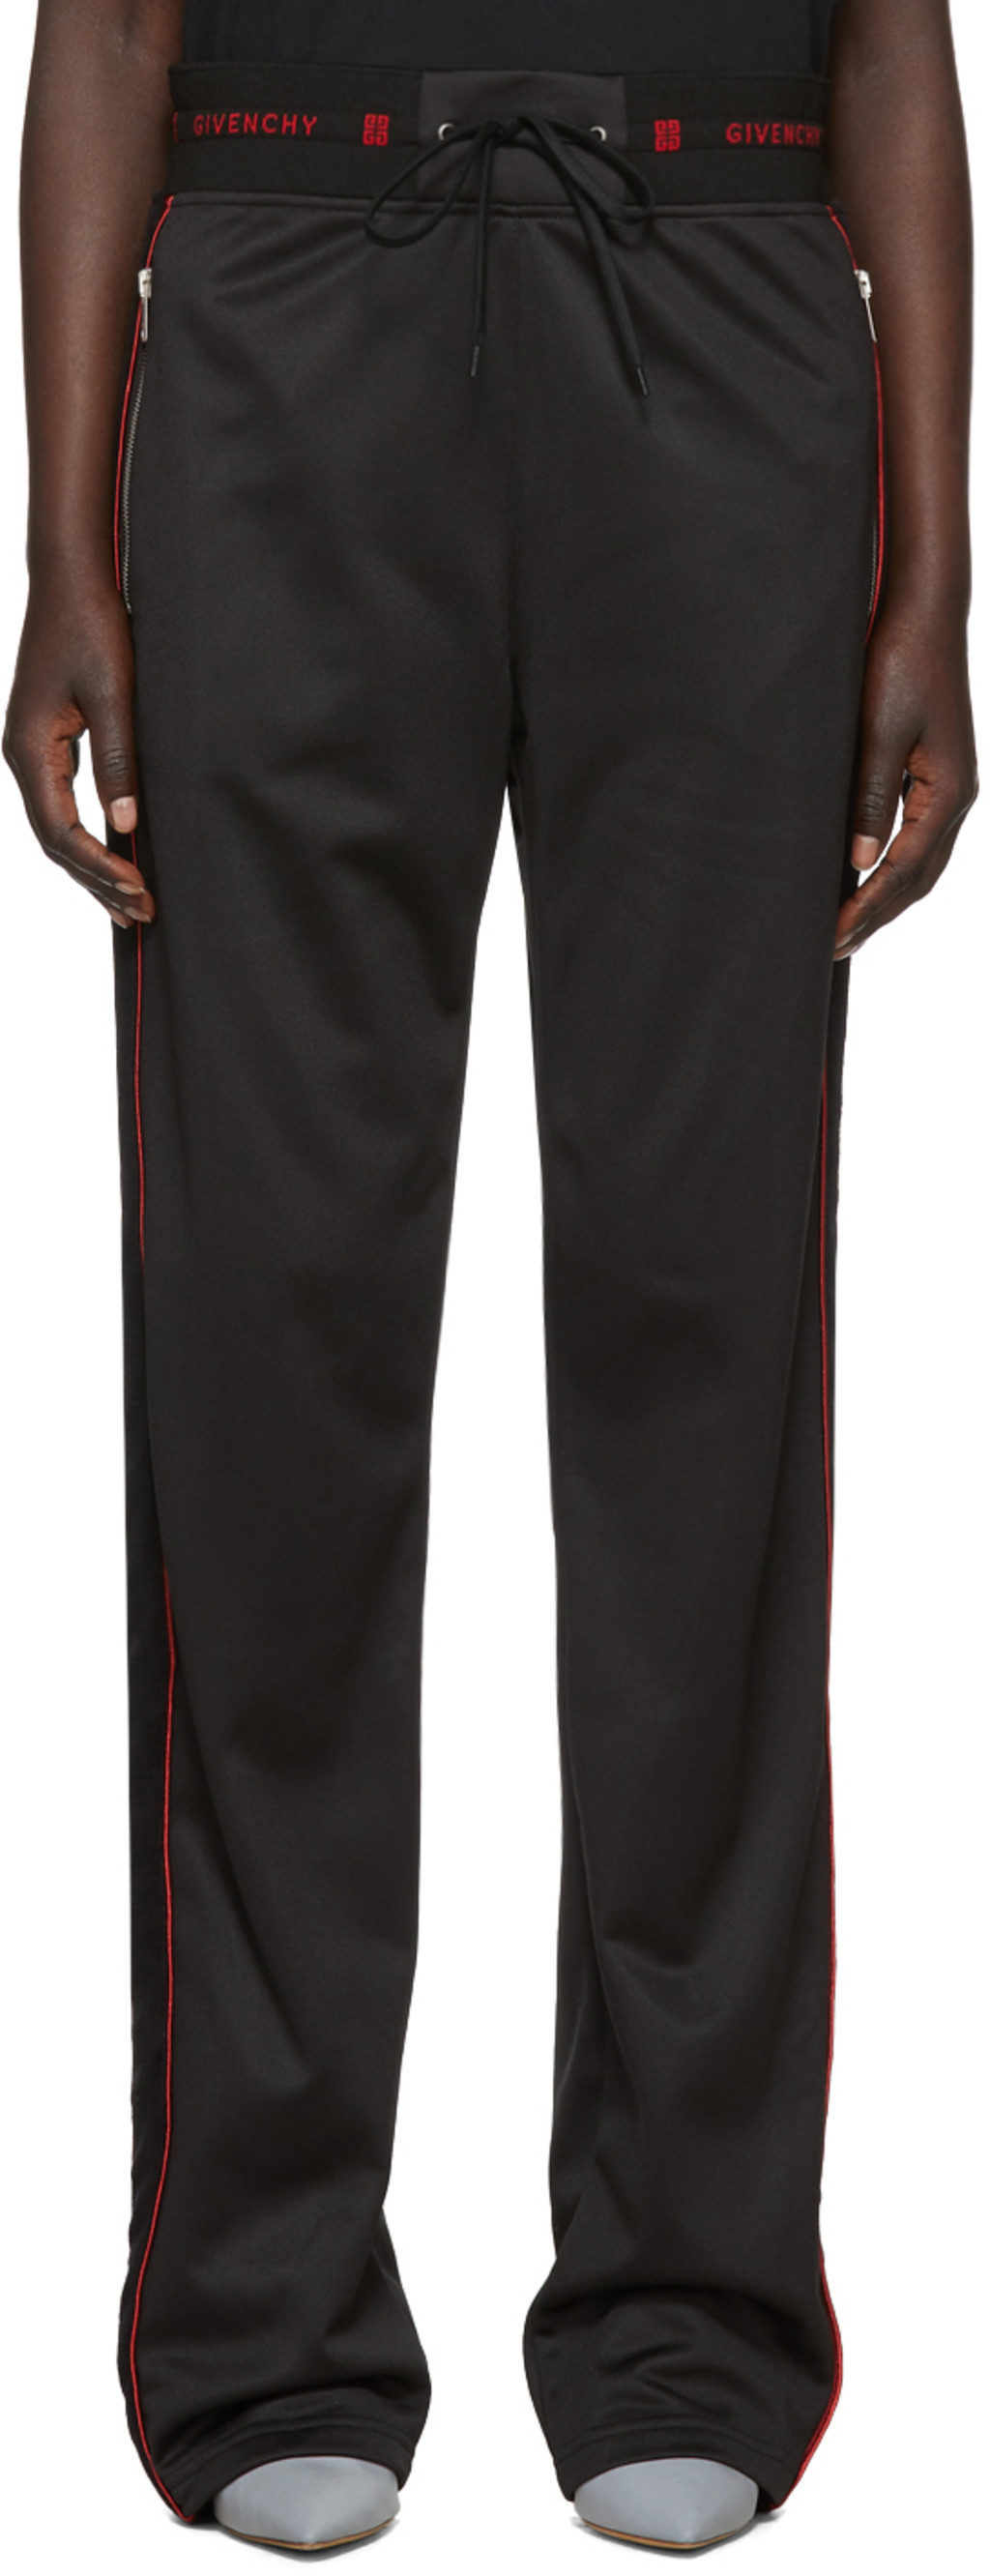 Black Velvet Band Lounge Pants Givenchy